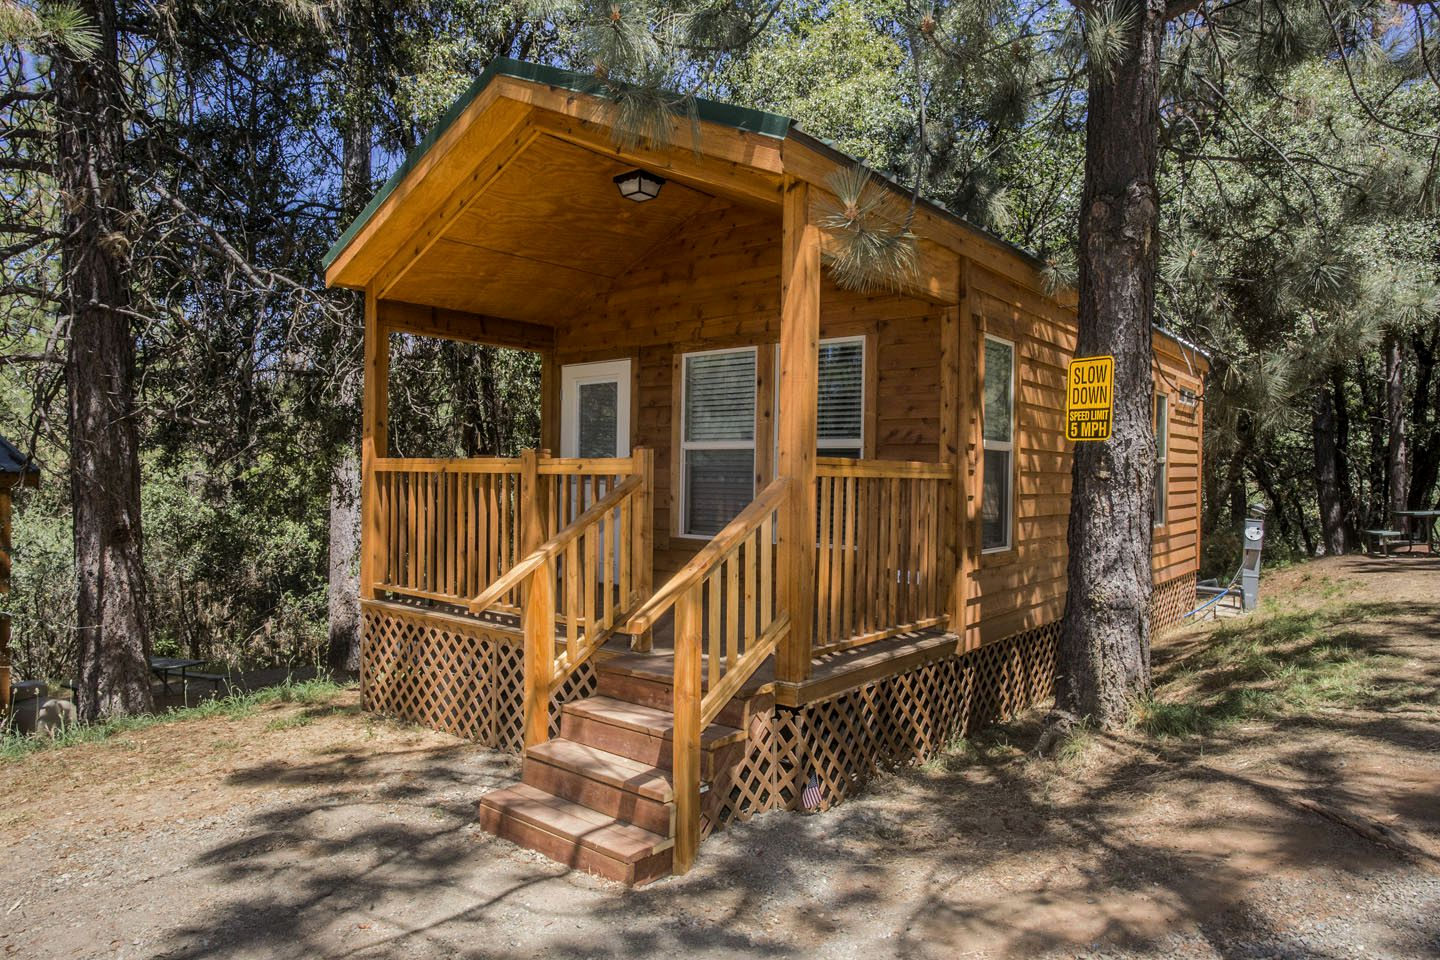 Cabin Rentals in luxury campsite near Yosemite National Park (Groveland, California, United States)